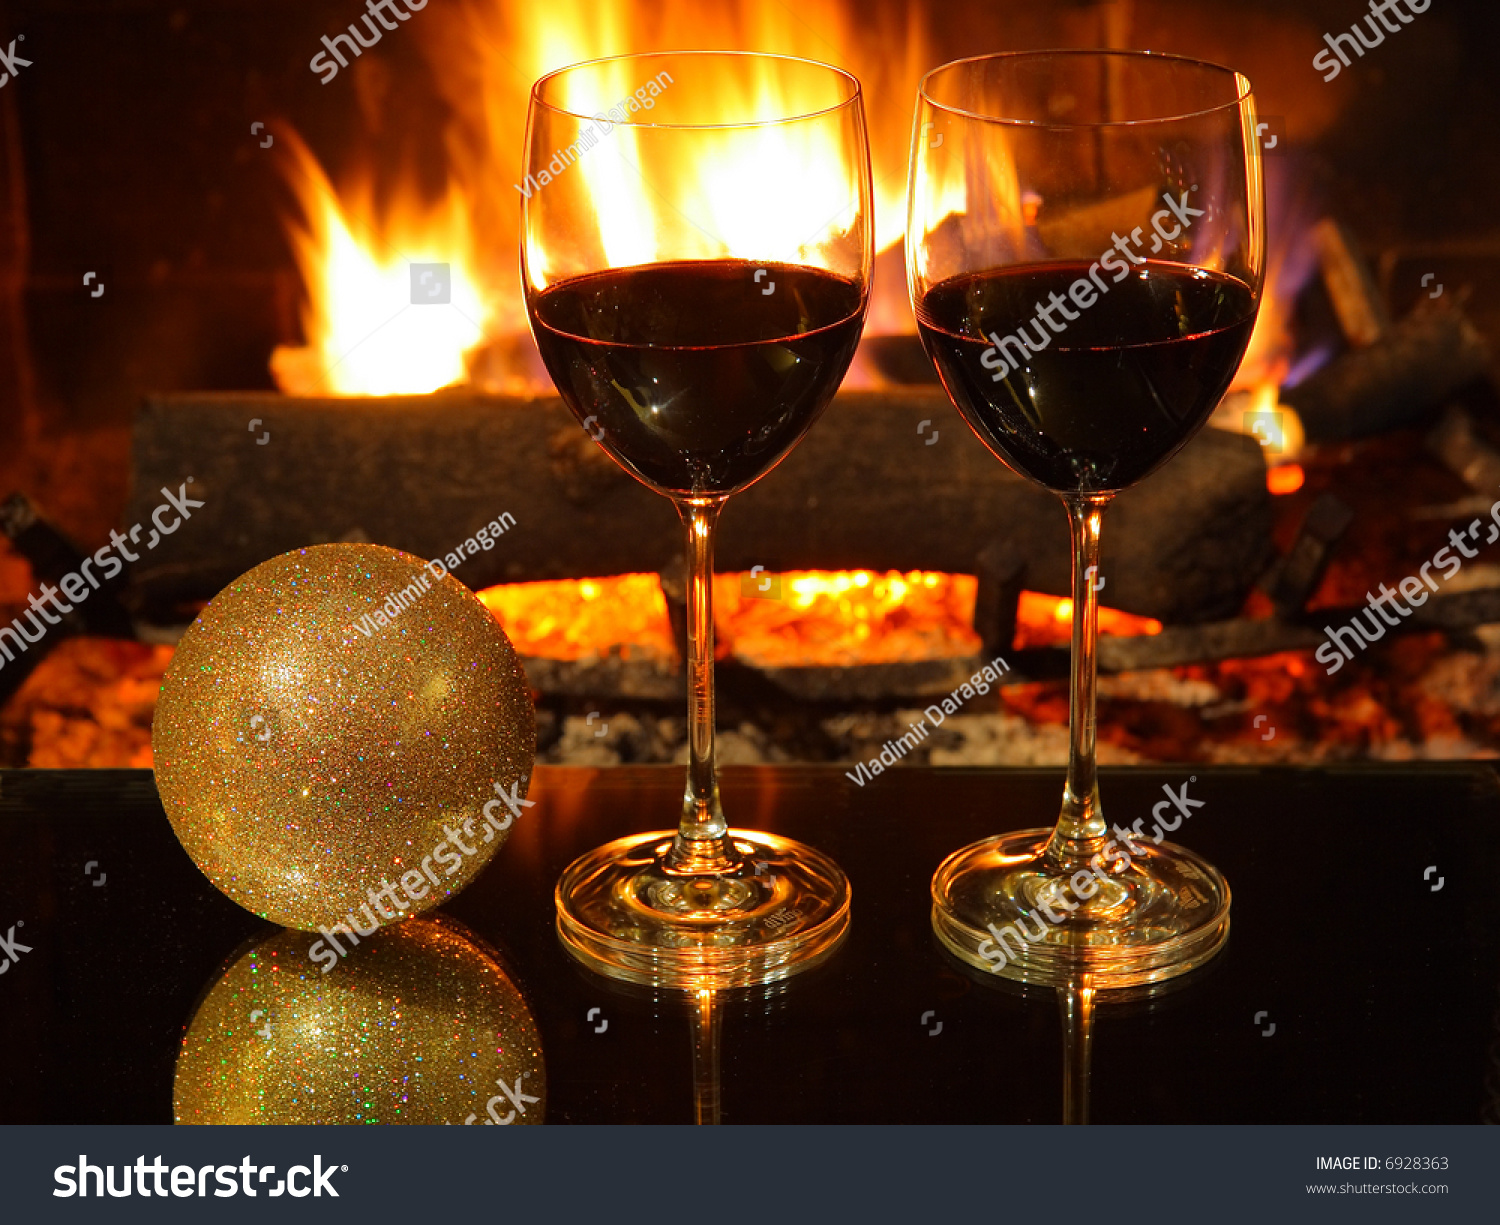 Romantic Dinner Two Two Glasses Red Stock Photo 6928363 - Shutterstock